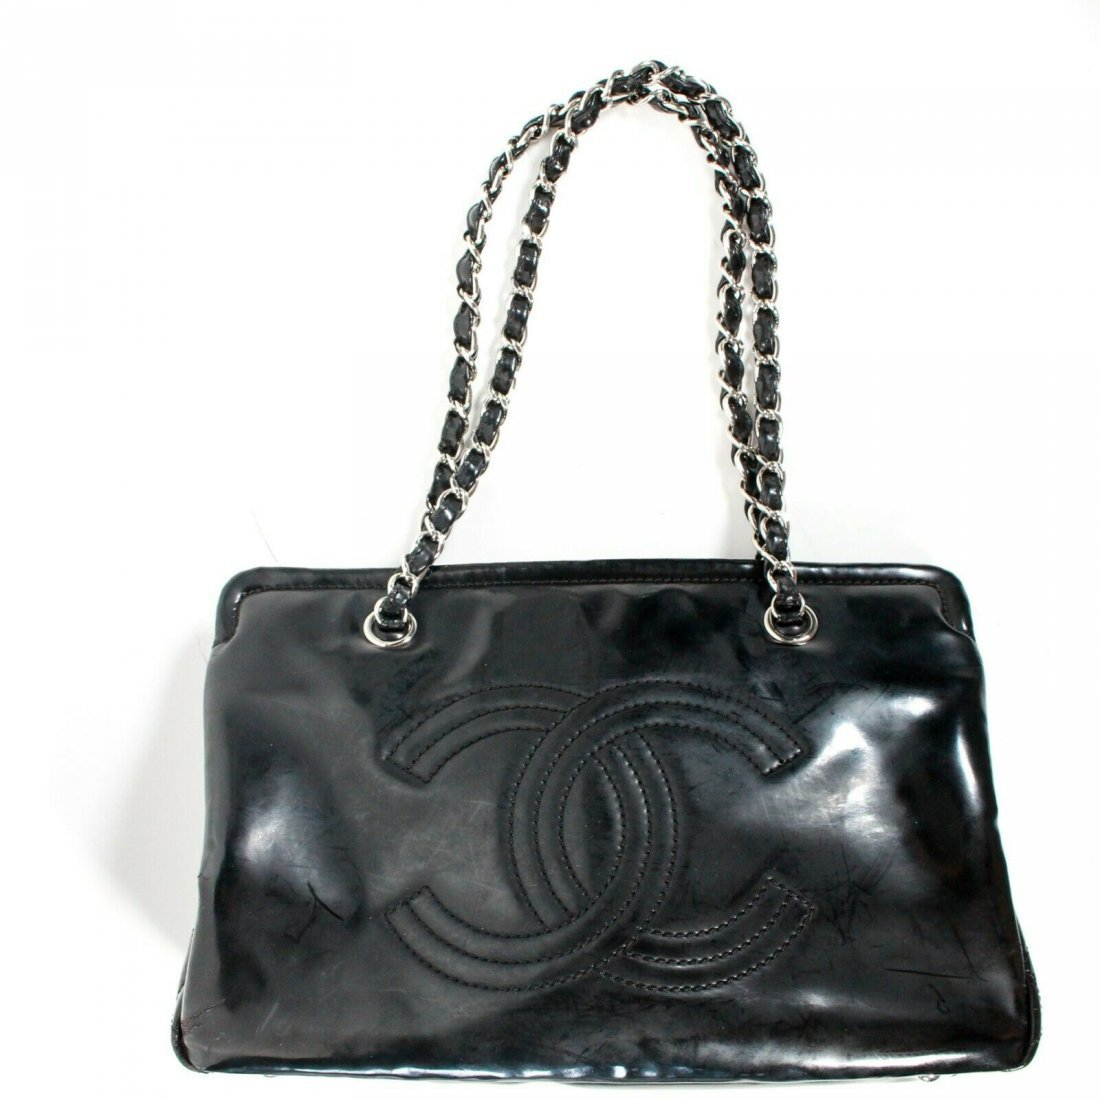 Chanel - Large CC Tote Bag - Black Patent Leather